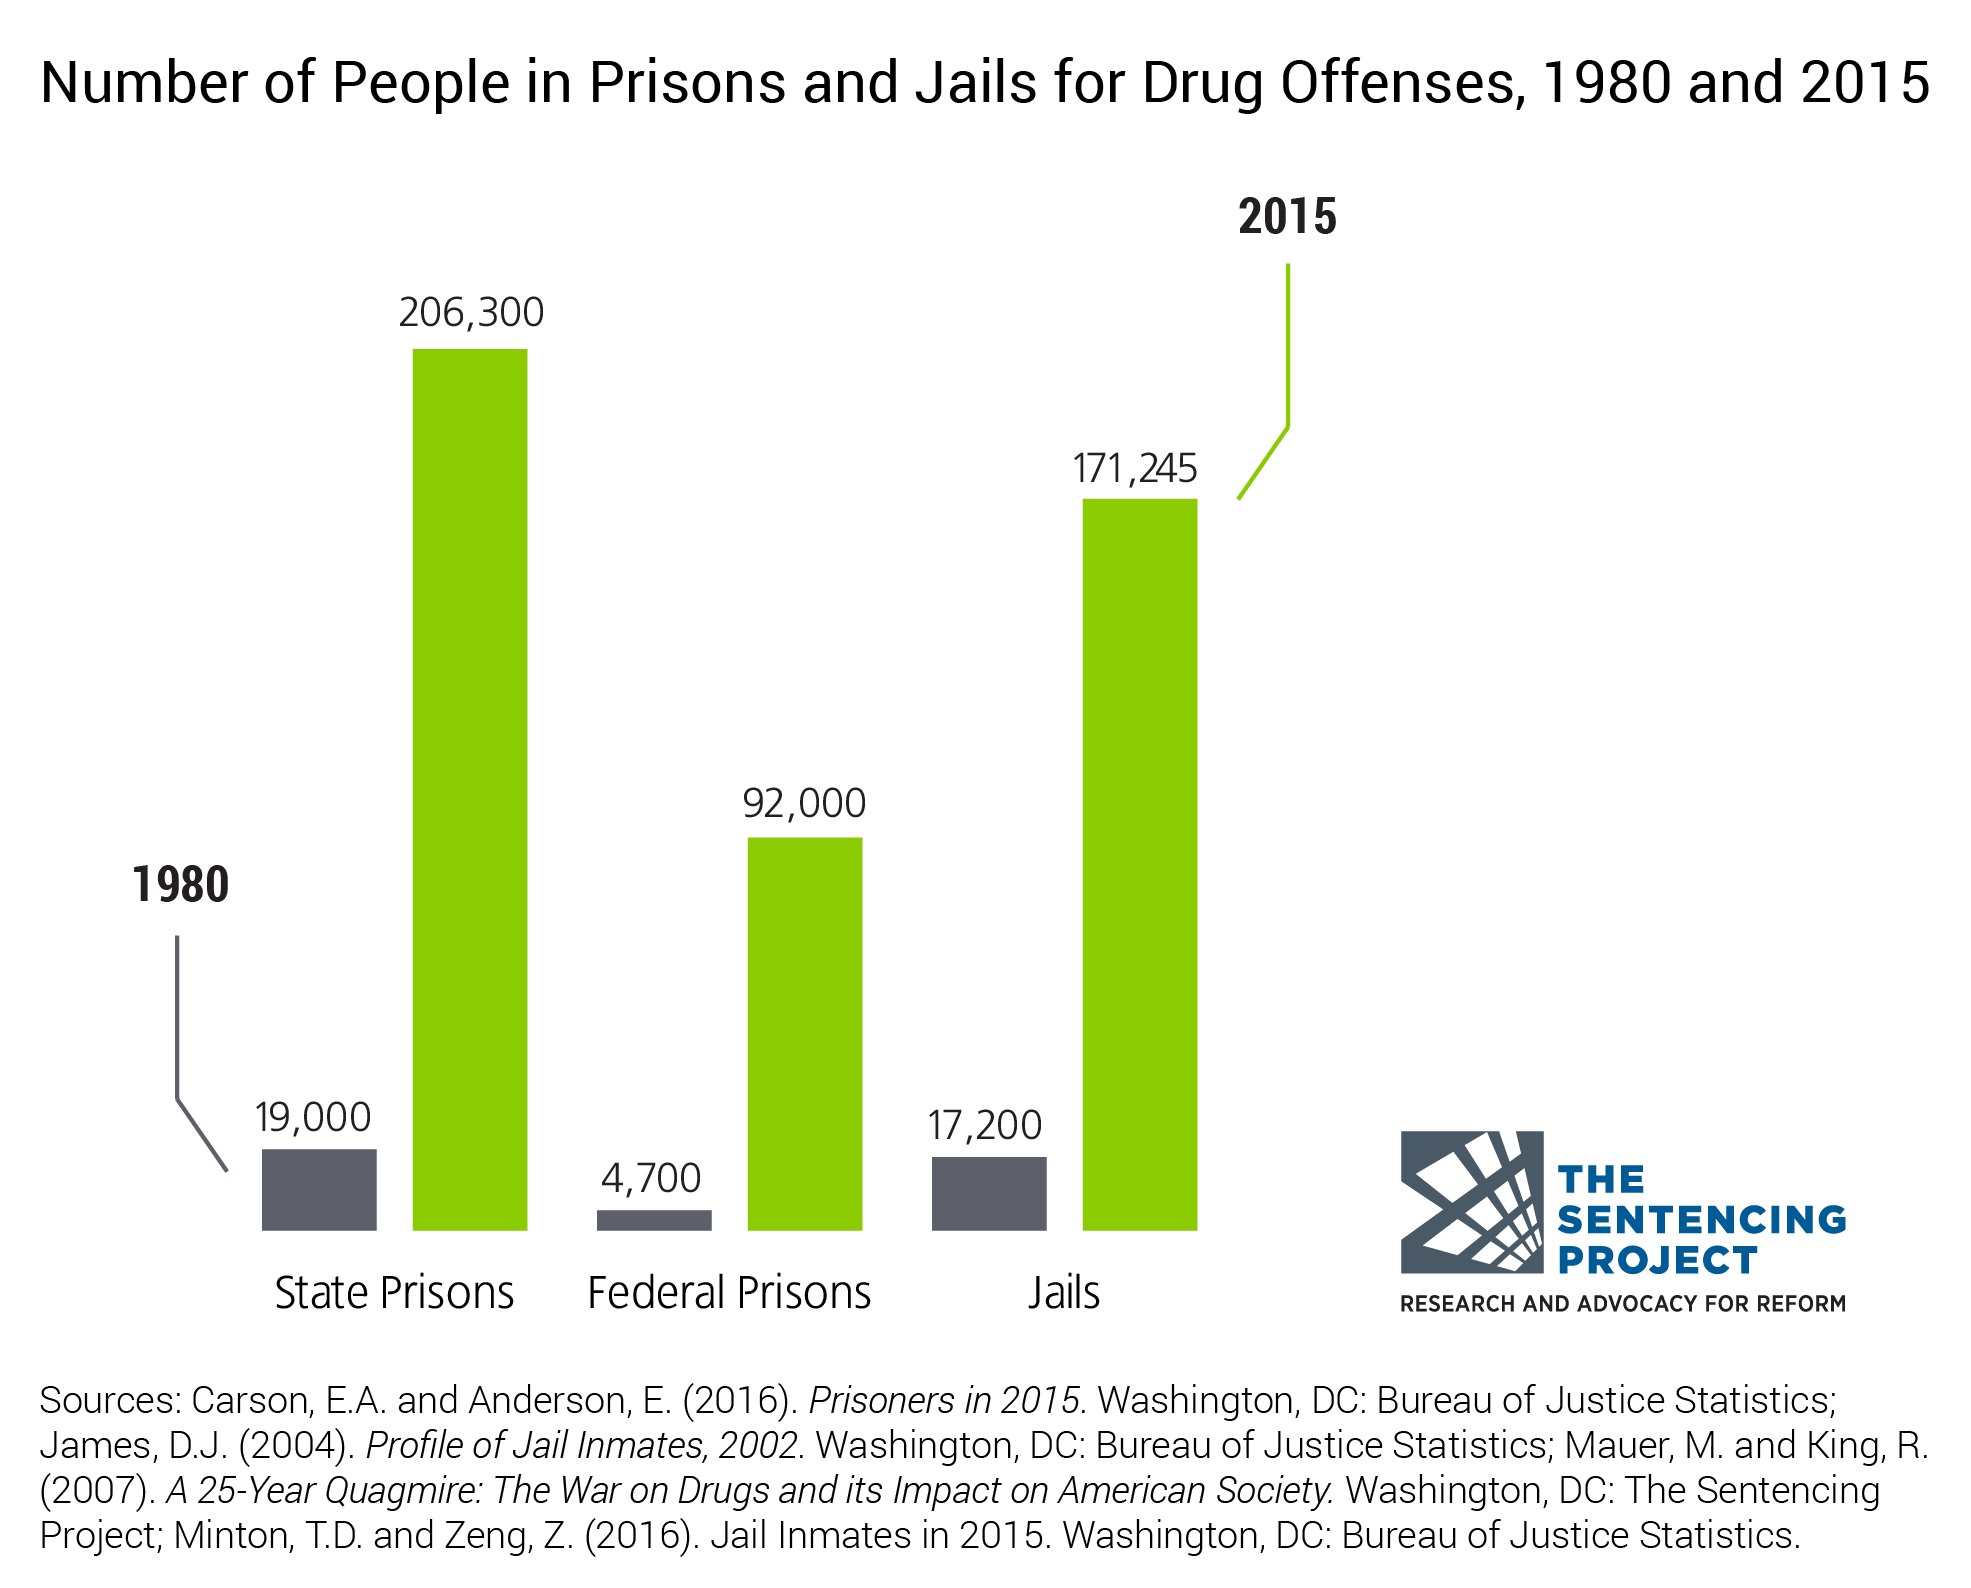 people-in-prisons-and-jails-for-drug-offenses-1980-2015